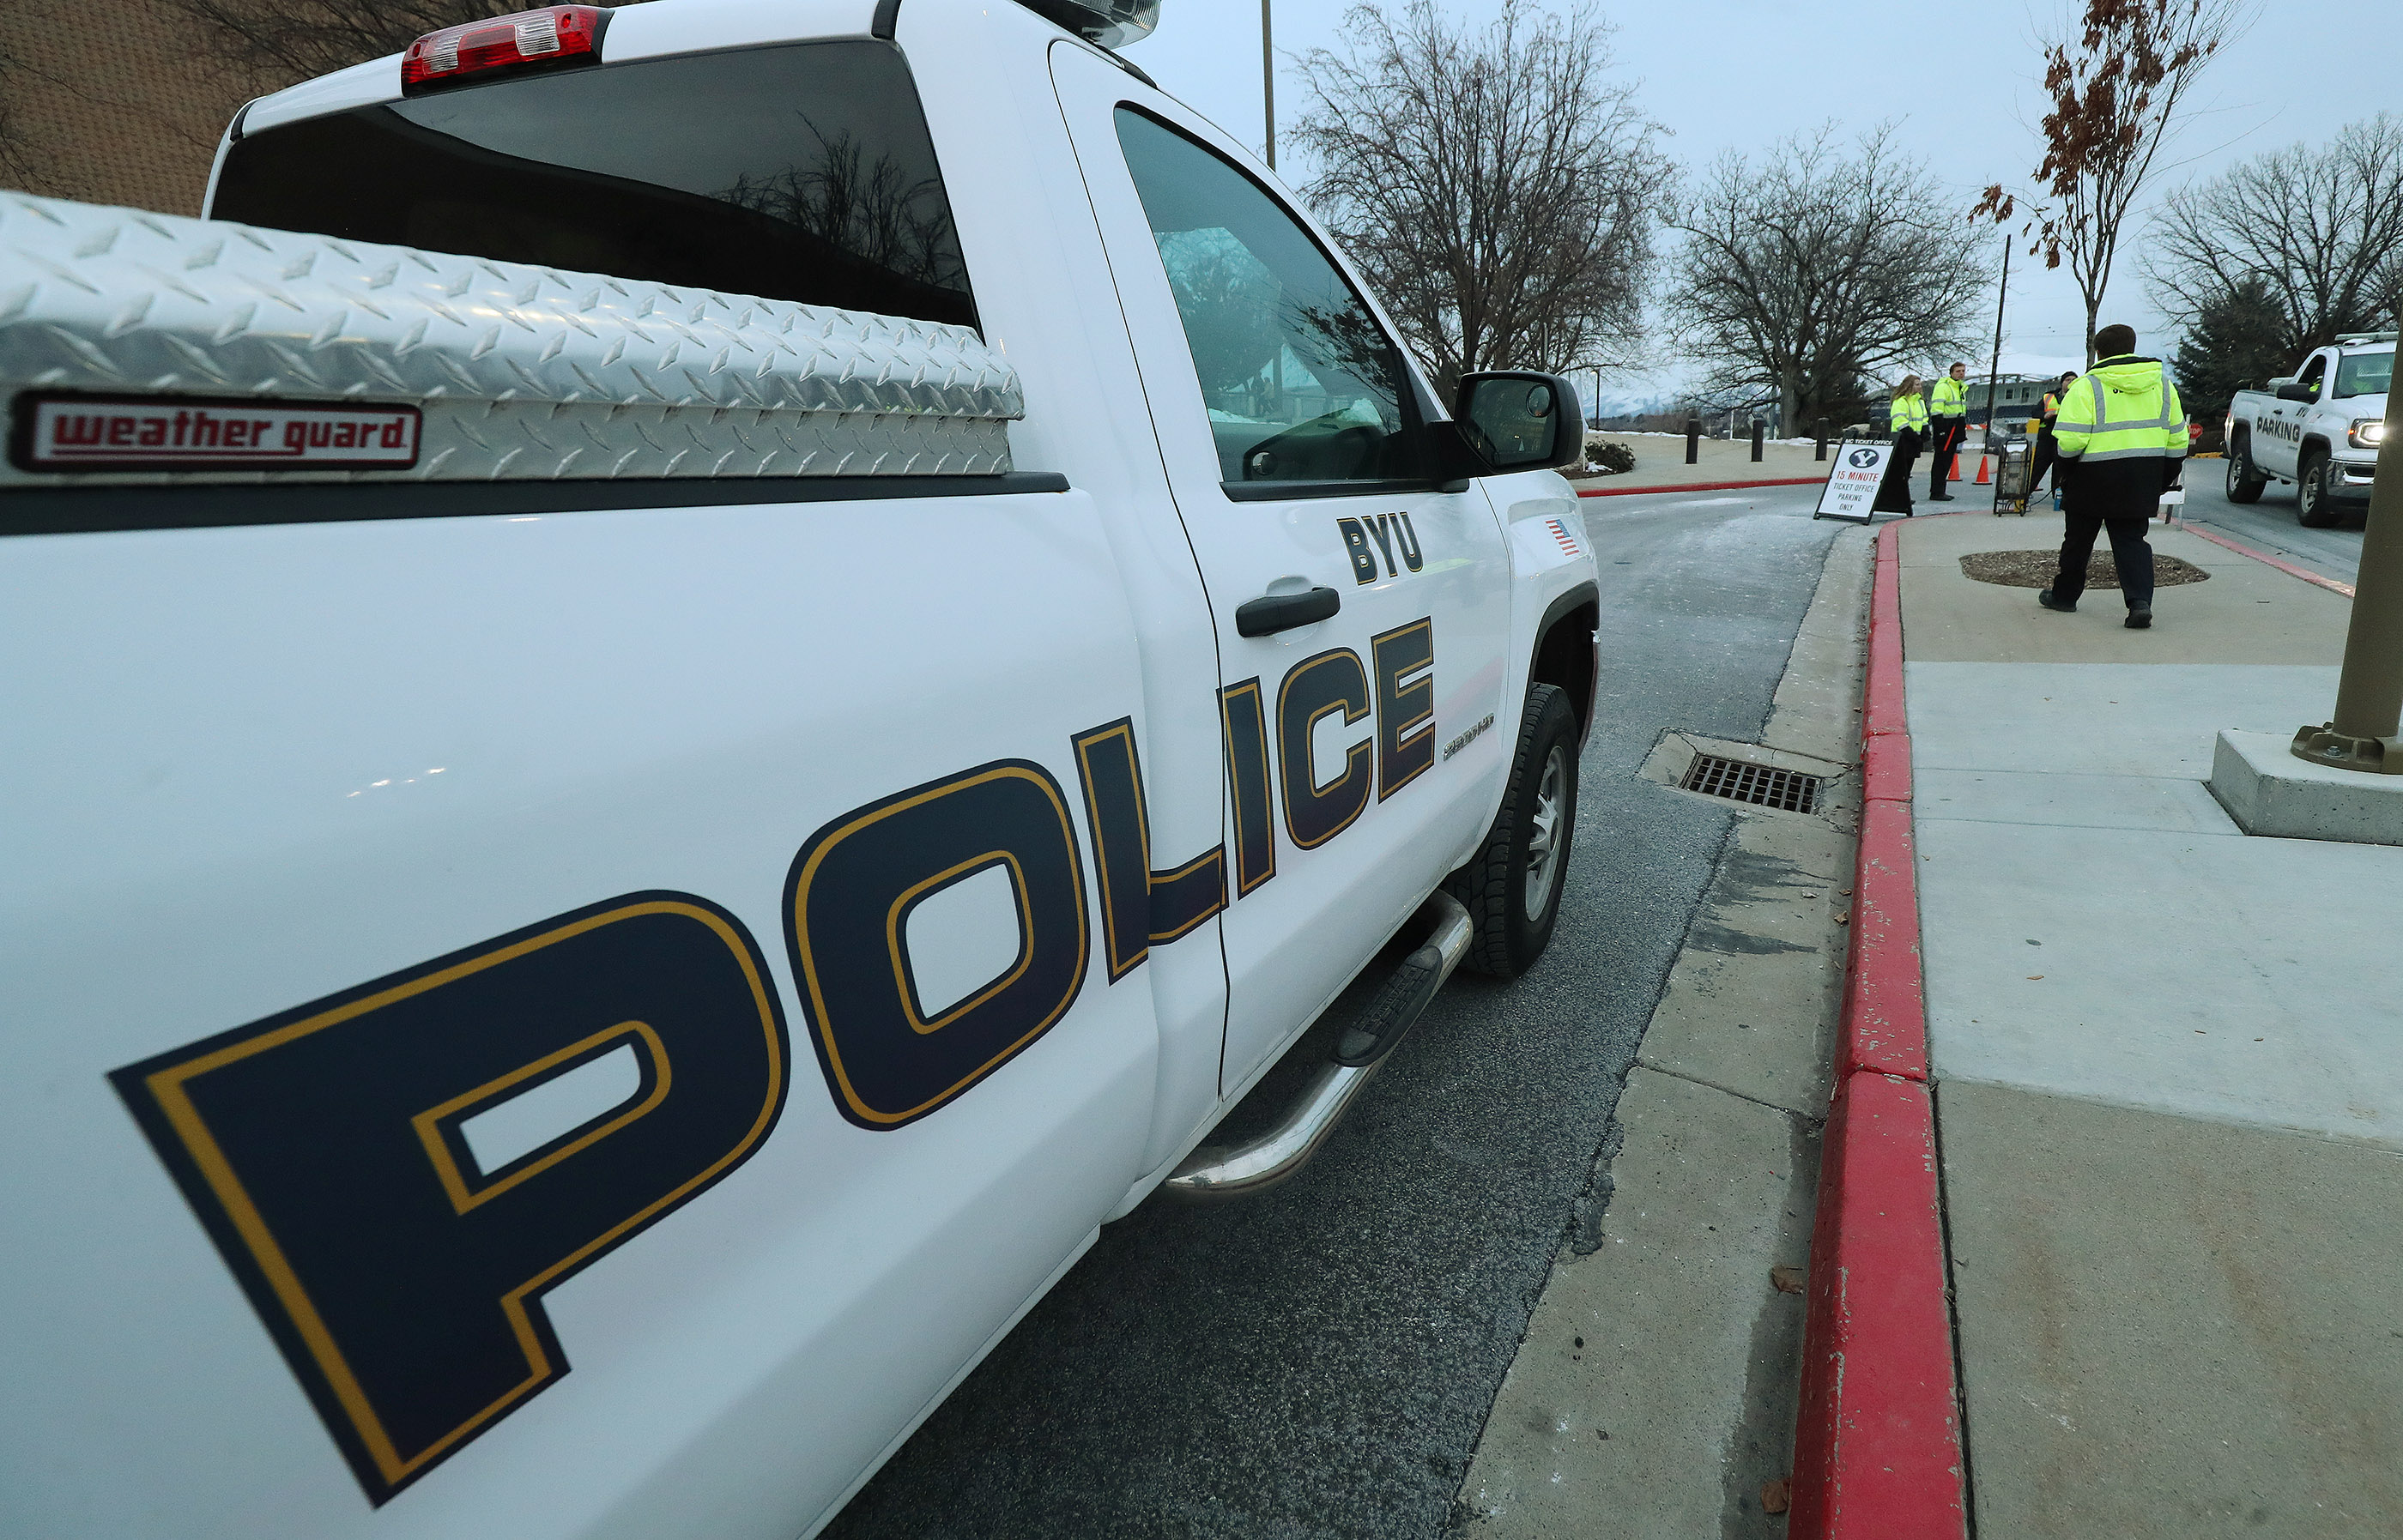 BYU police monitor traffic at a university basketball game in Provo on Thursday, Feb. 21, 2019.